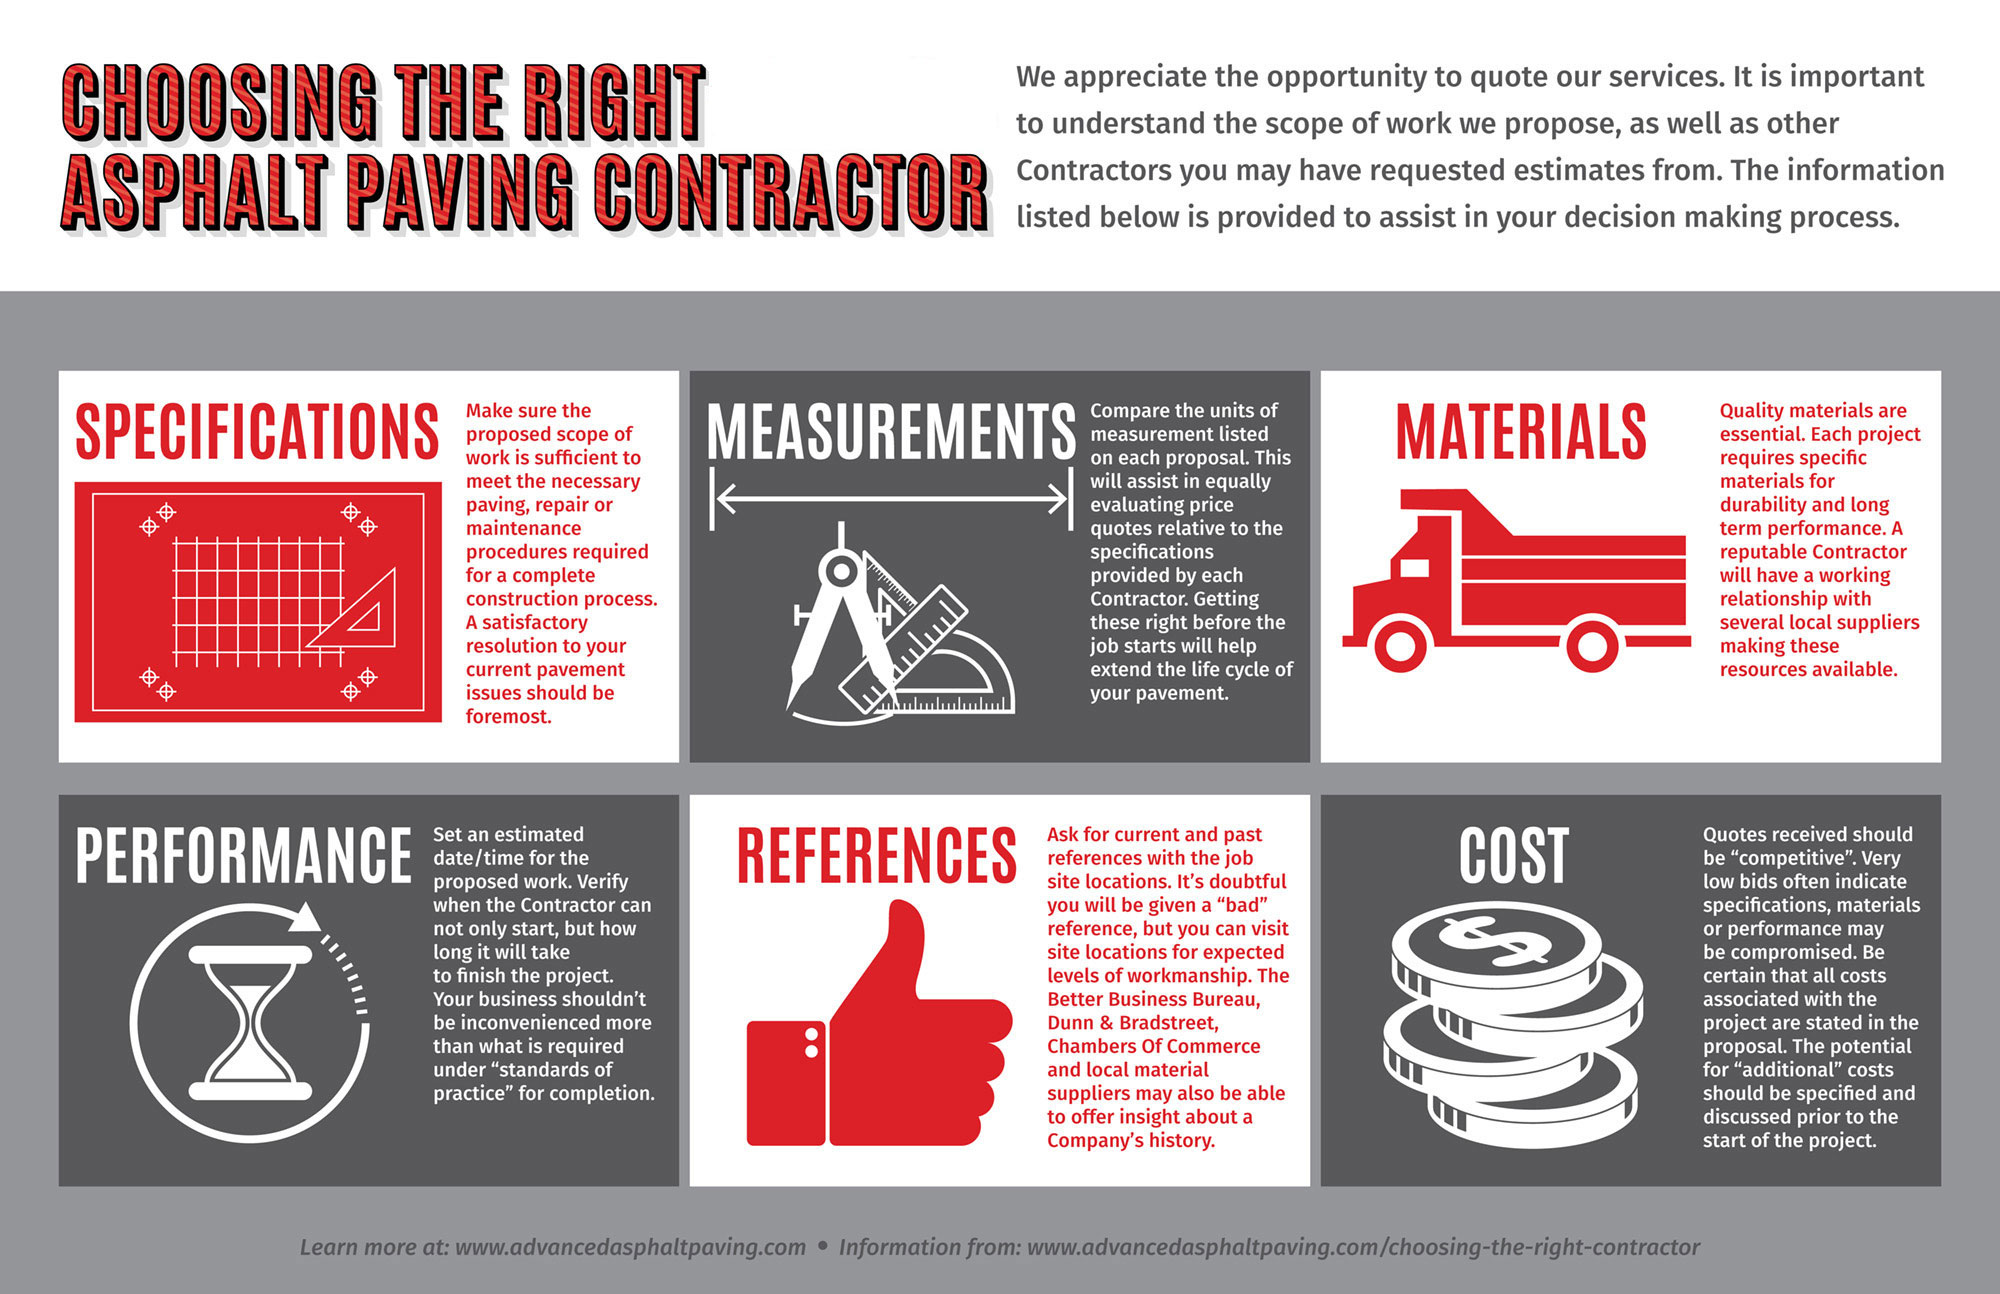 Choosing The Right Asphalt Paving Contractor